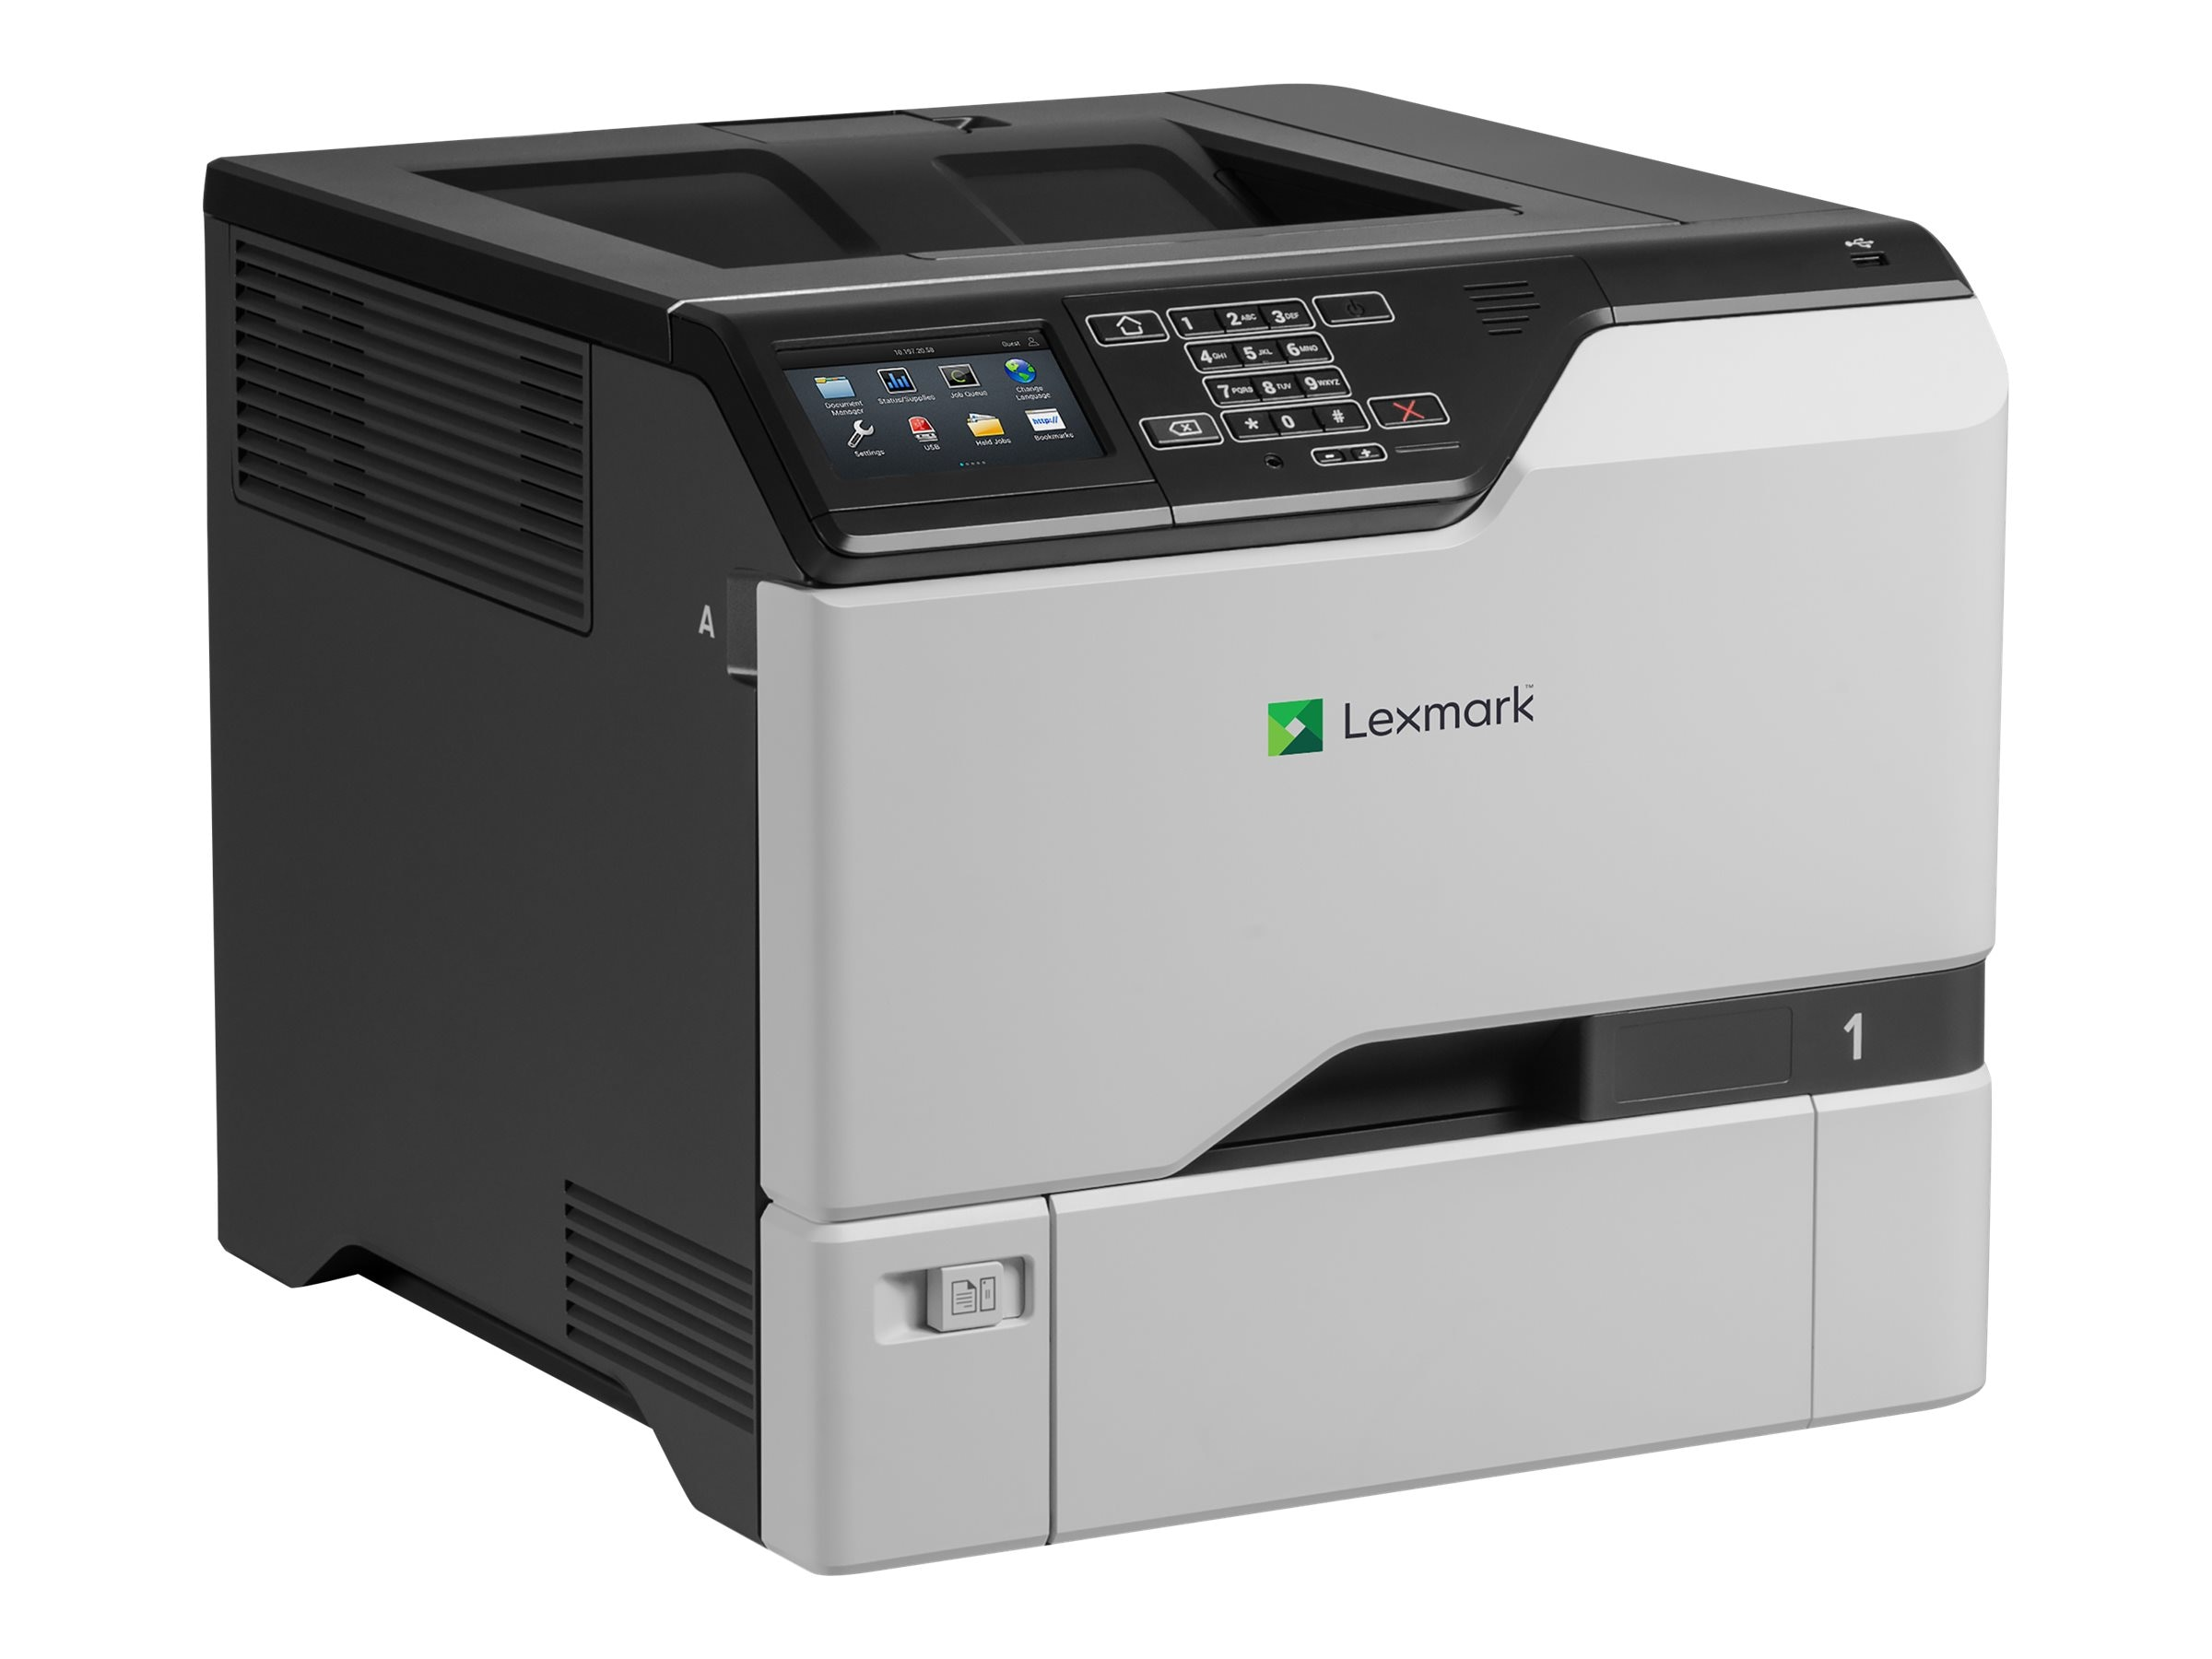 Lexmark CS720de Color Laser Printer - HV (TAA Compliant), 40CT120